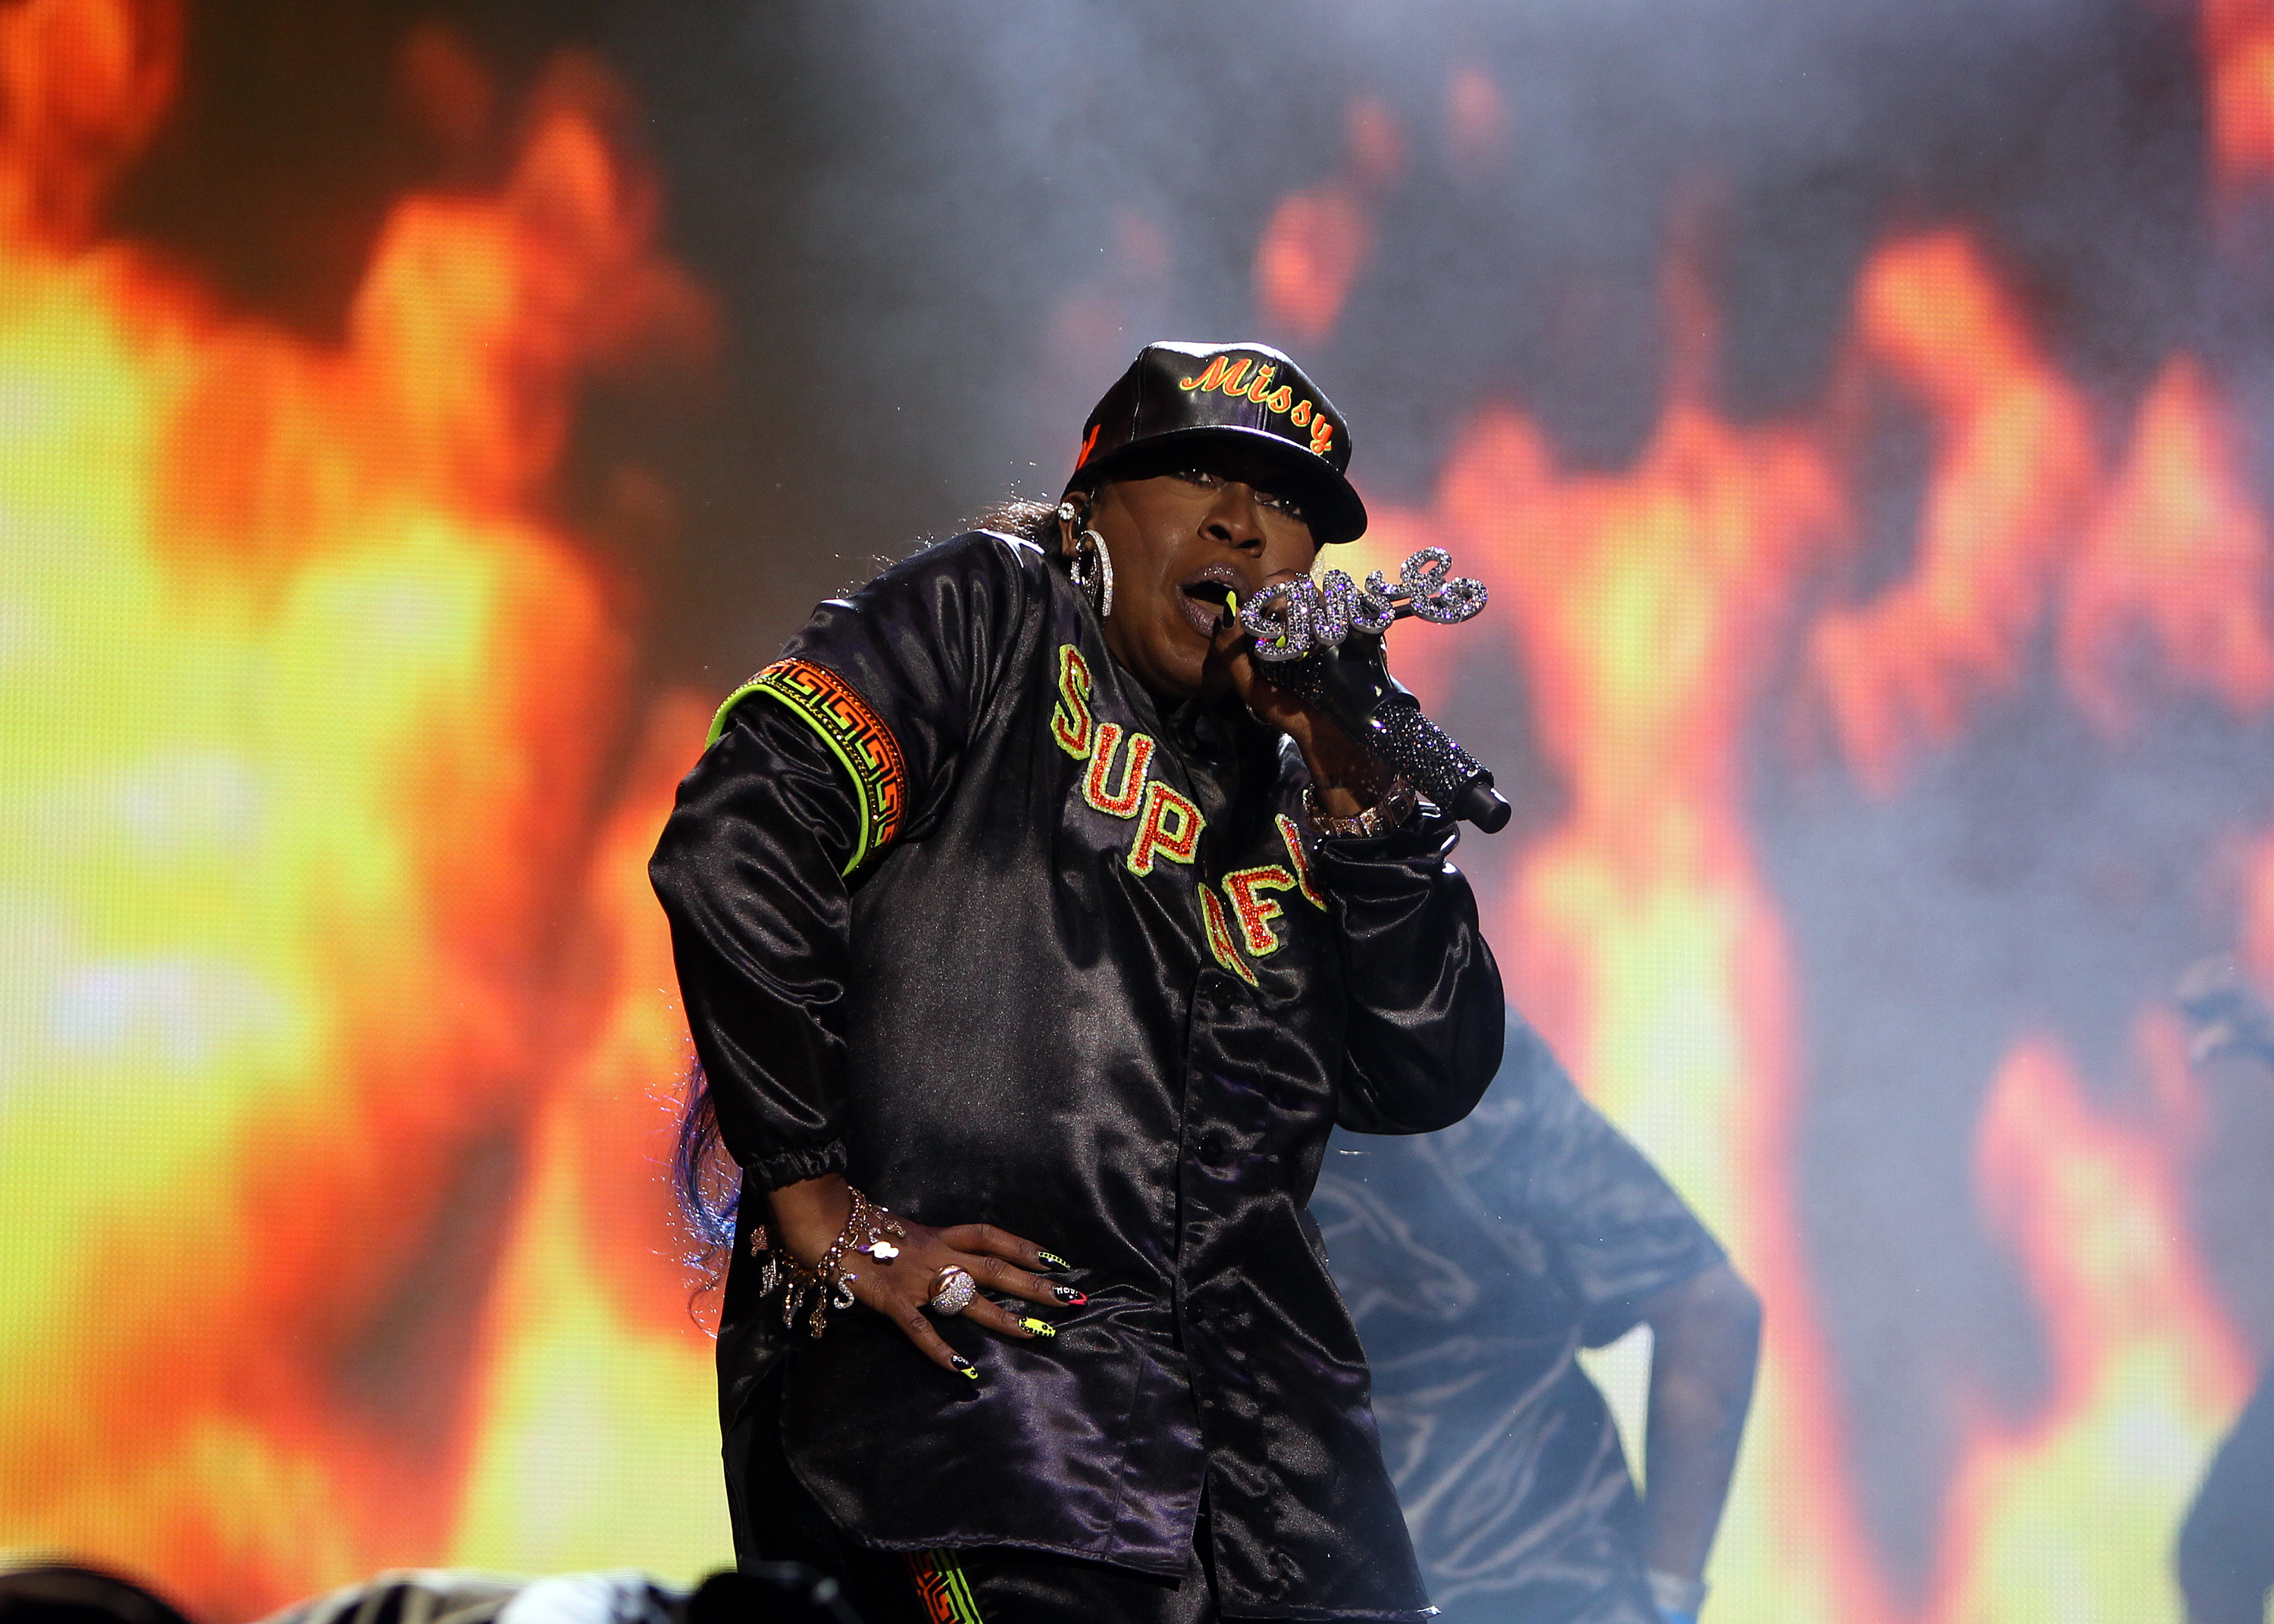 Bestival 2015 - Day 4 - Performances and Atmosphere  Featuring: Missy Elliot Where: Isle Of Wight, United Kingdom When: 13 Sep 2015 Credit: WENN.com